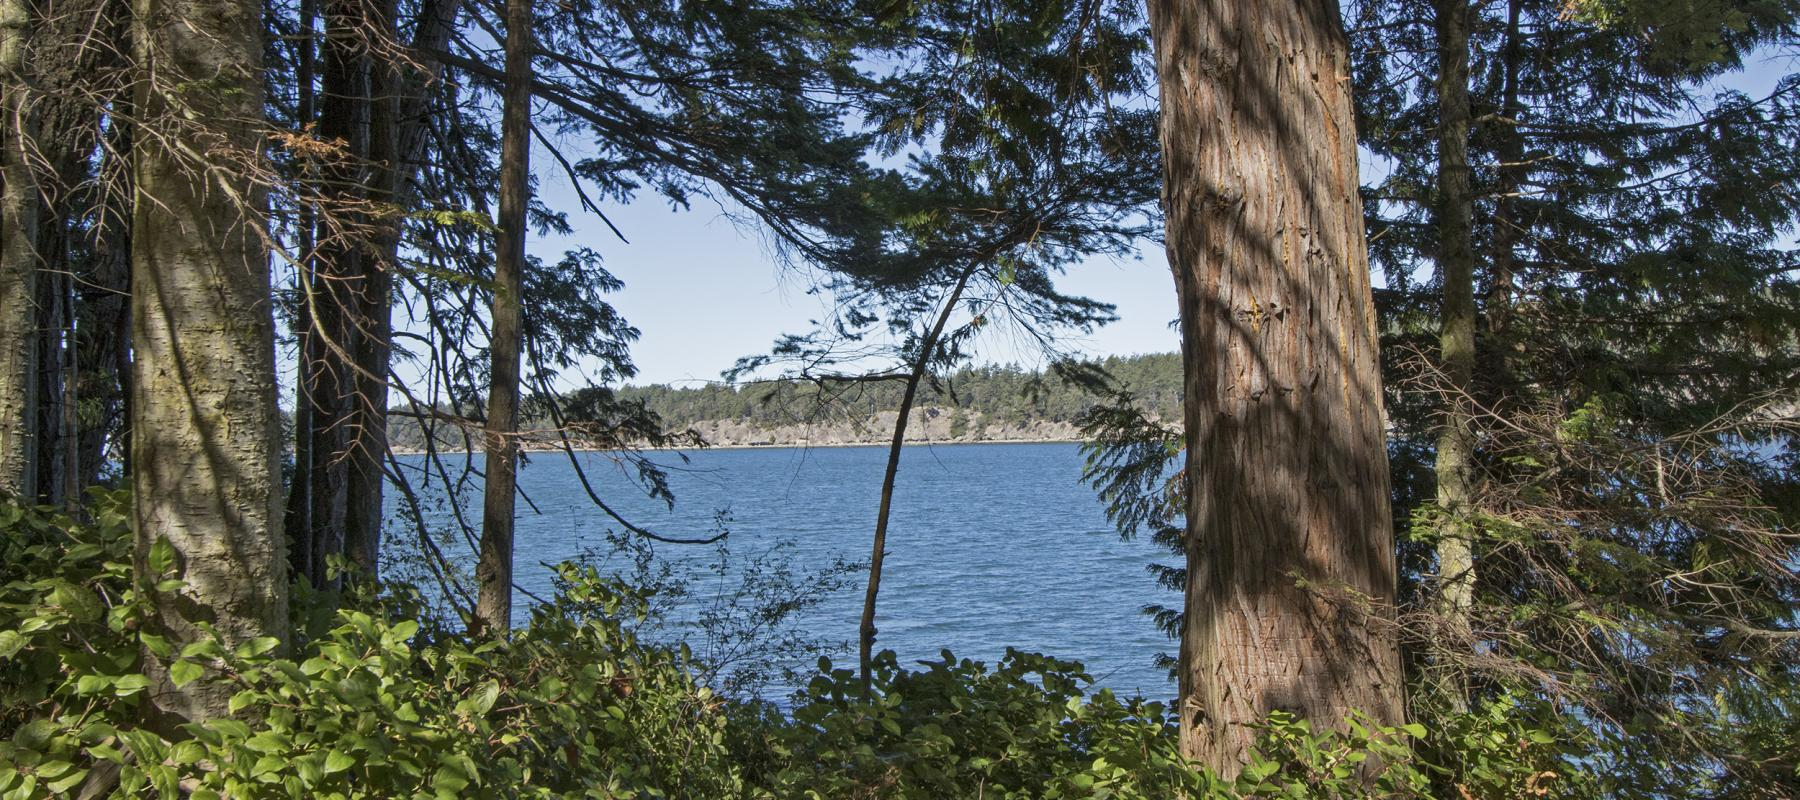 Saturna Island, Waterfront lot, Dockside Realty, Michael Vautour